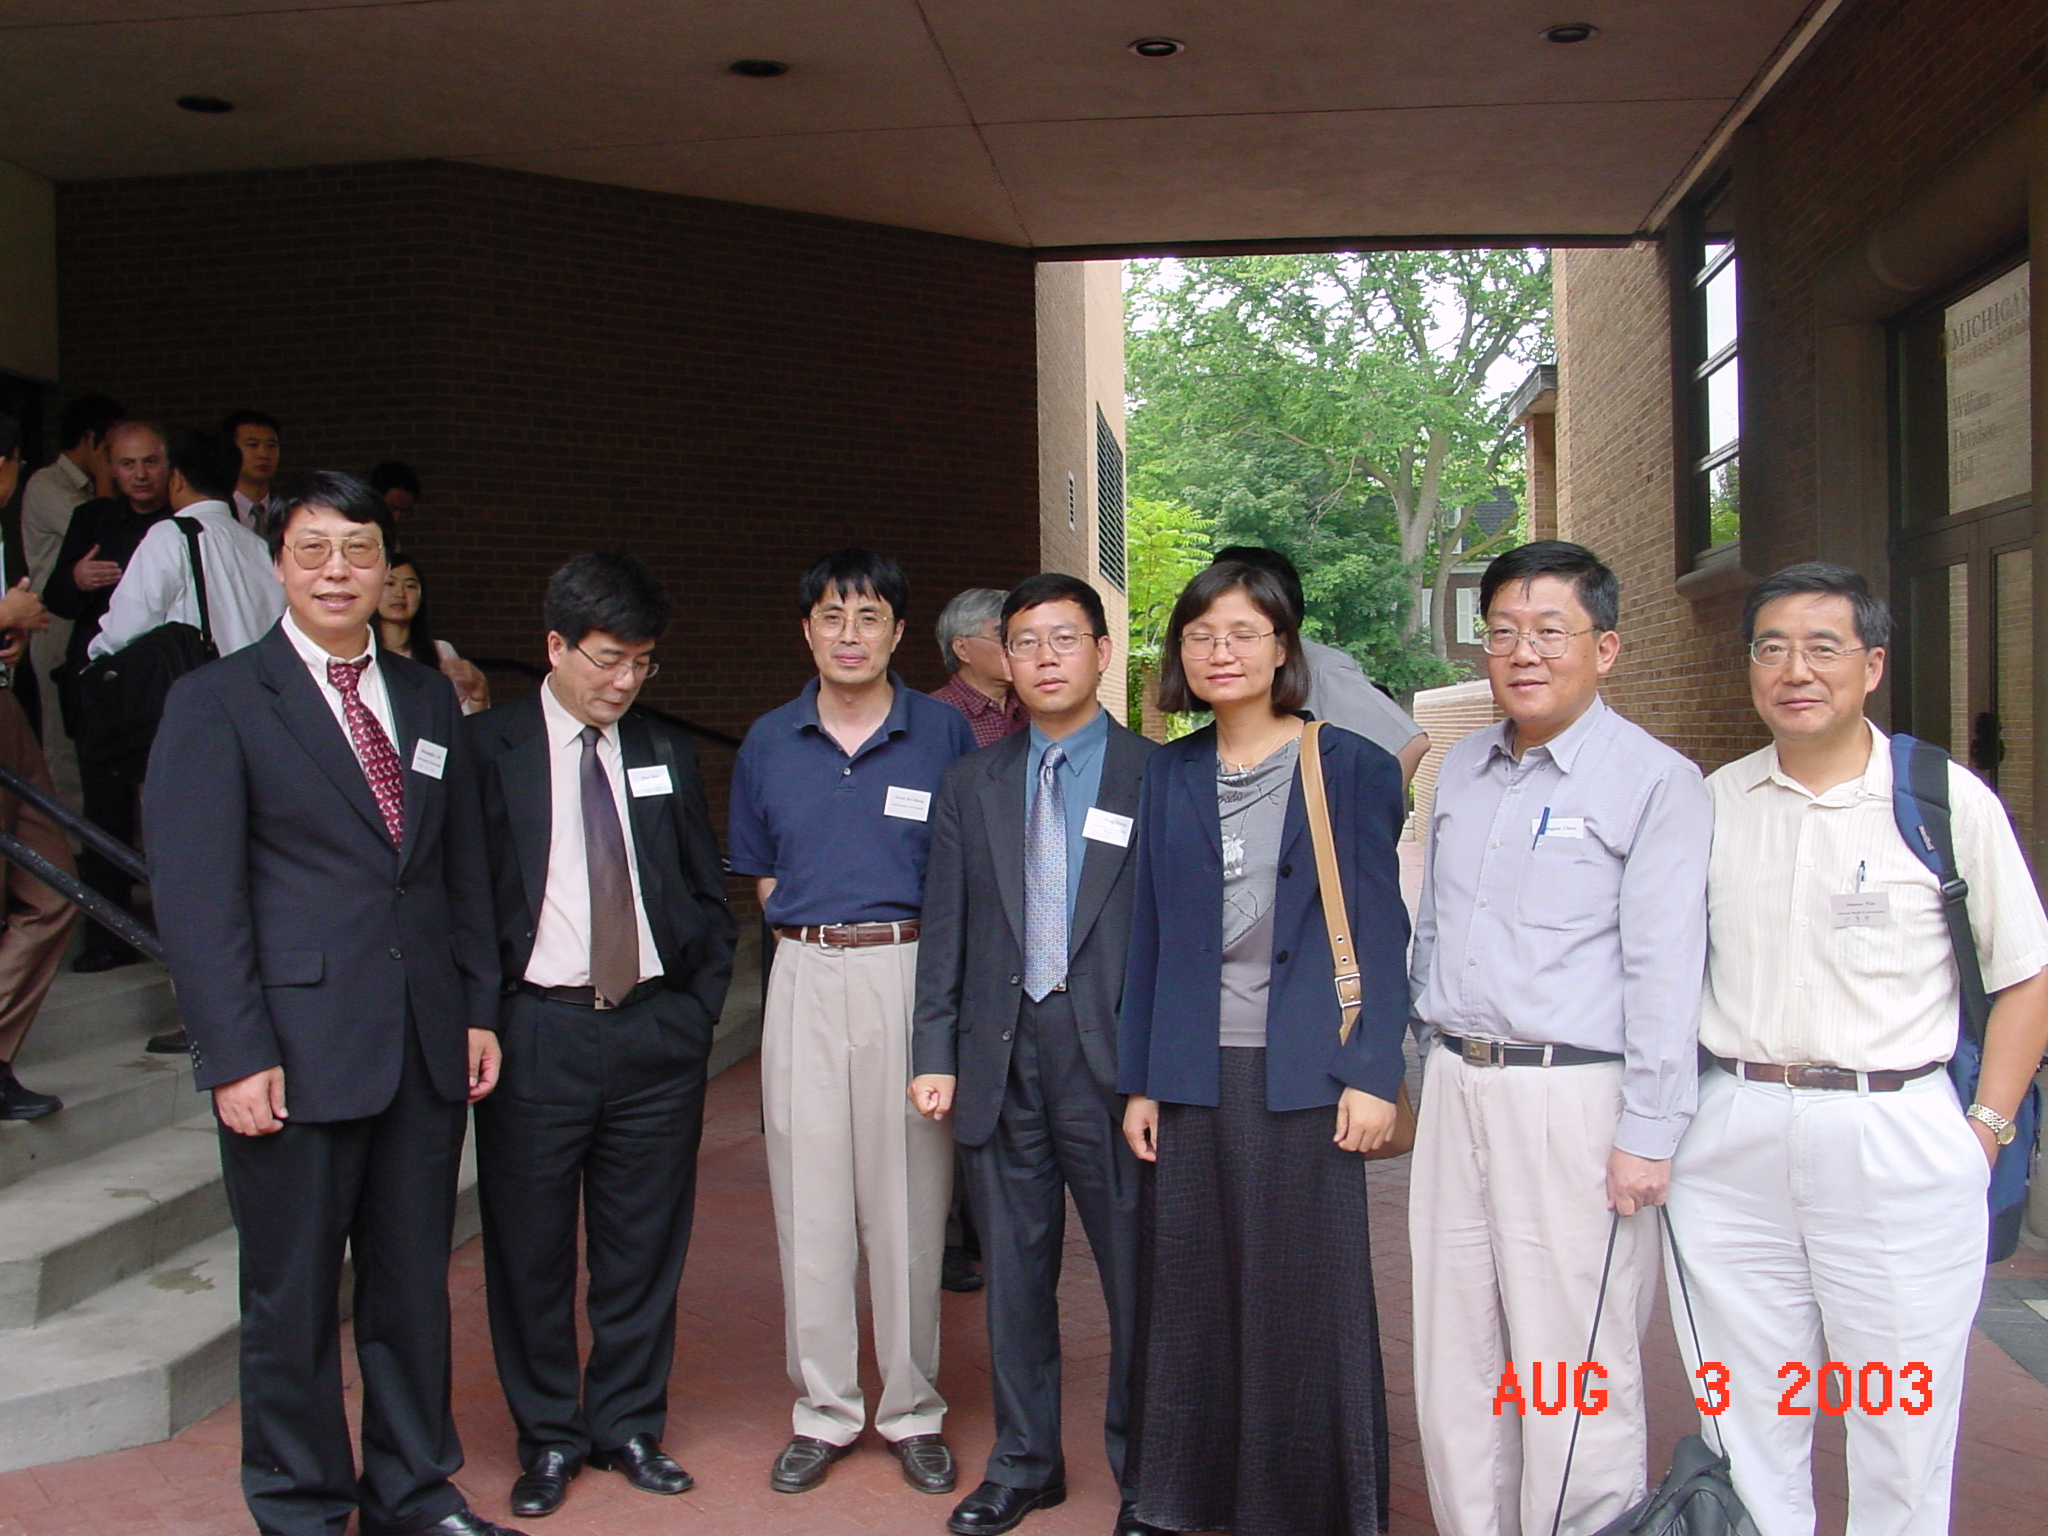 Professor Haizheng Li, CES Immediate past President, was appreciated for his contribution